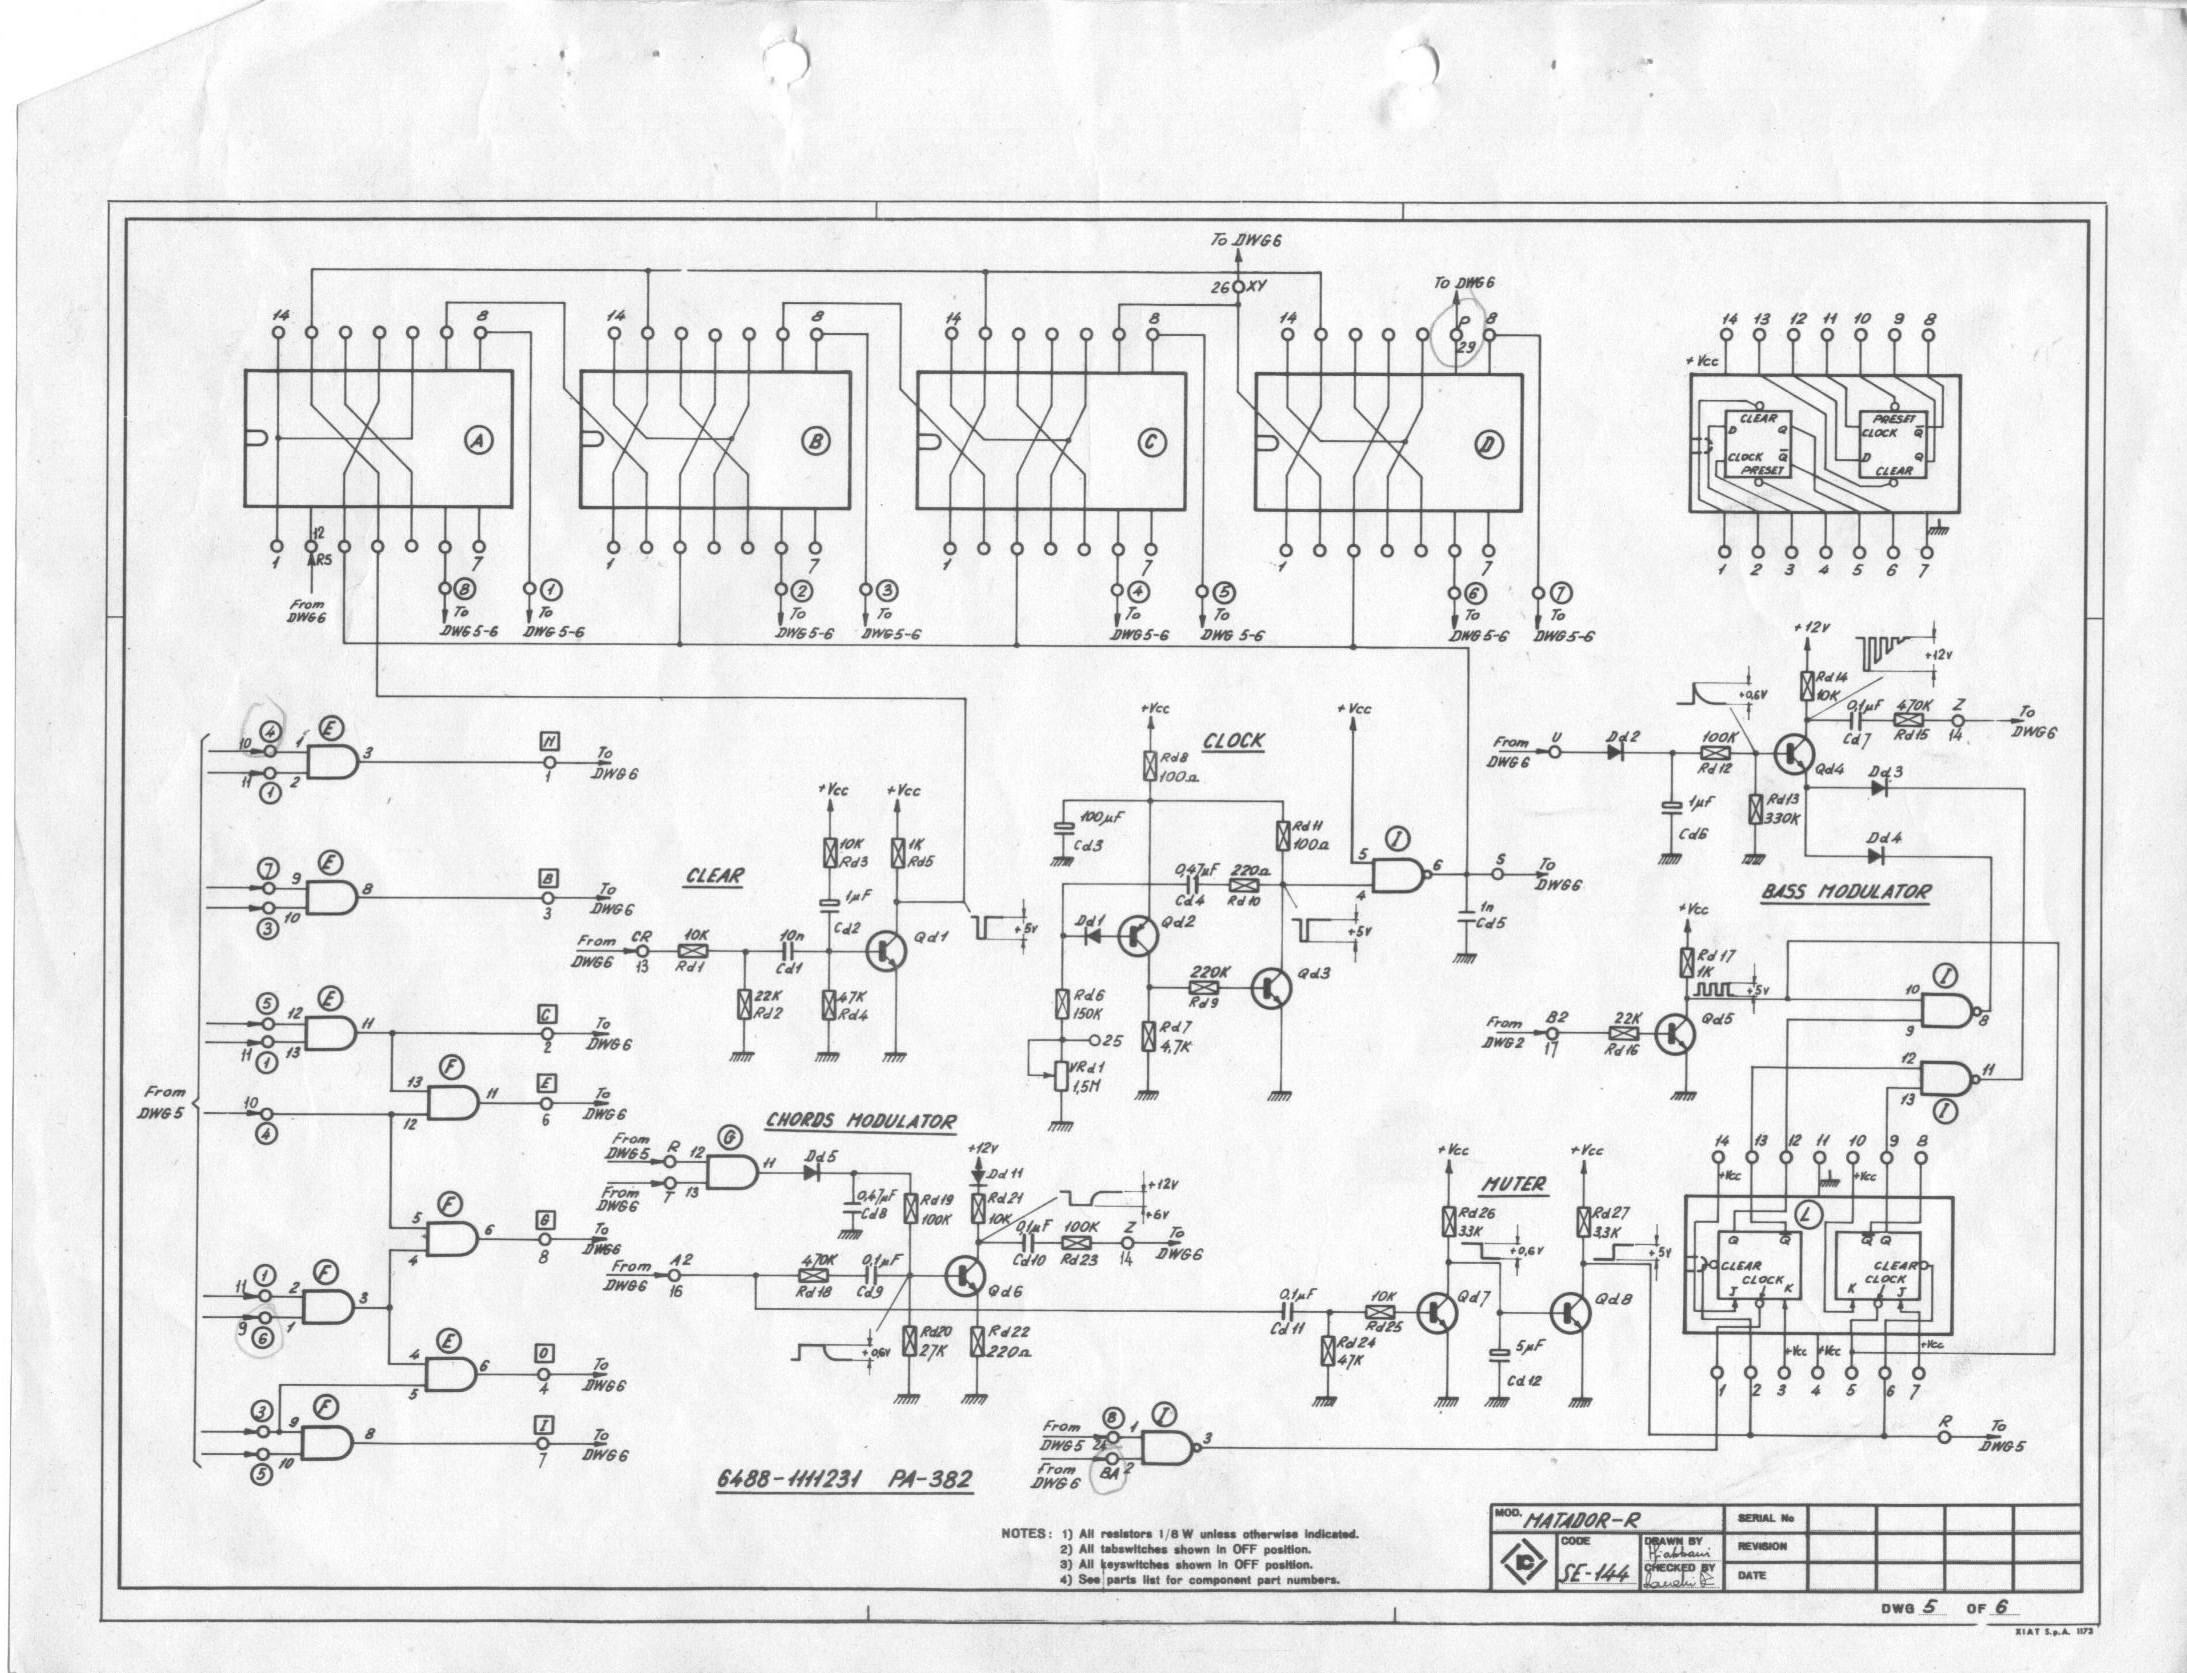 Matador06 farfisa matador r electronic organ schematic diagrams farfisa org farfisa wiring diagram at panicattacktreatment.co